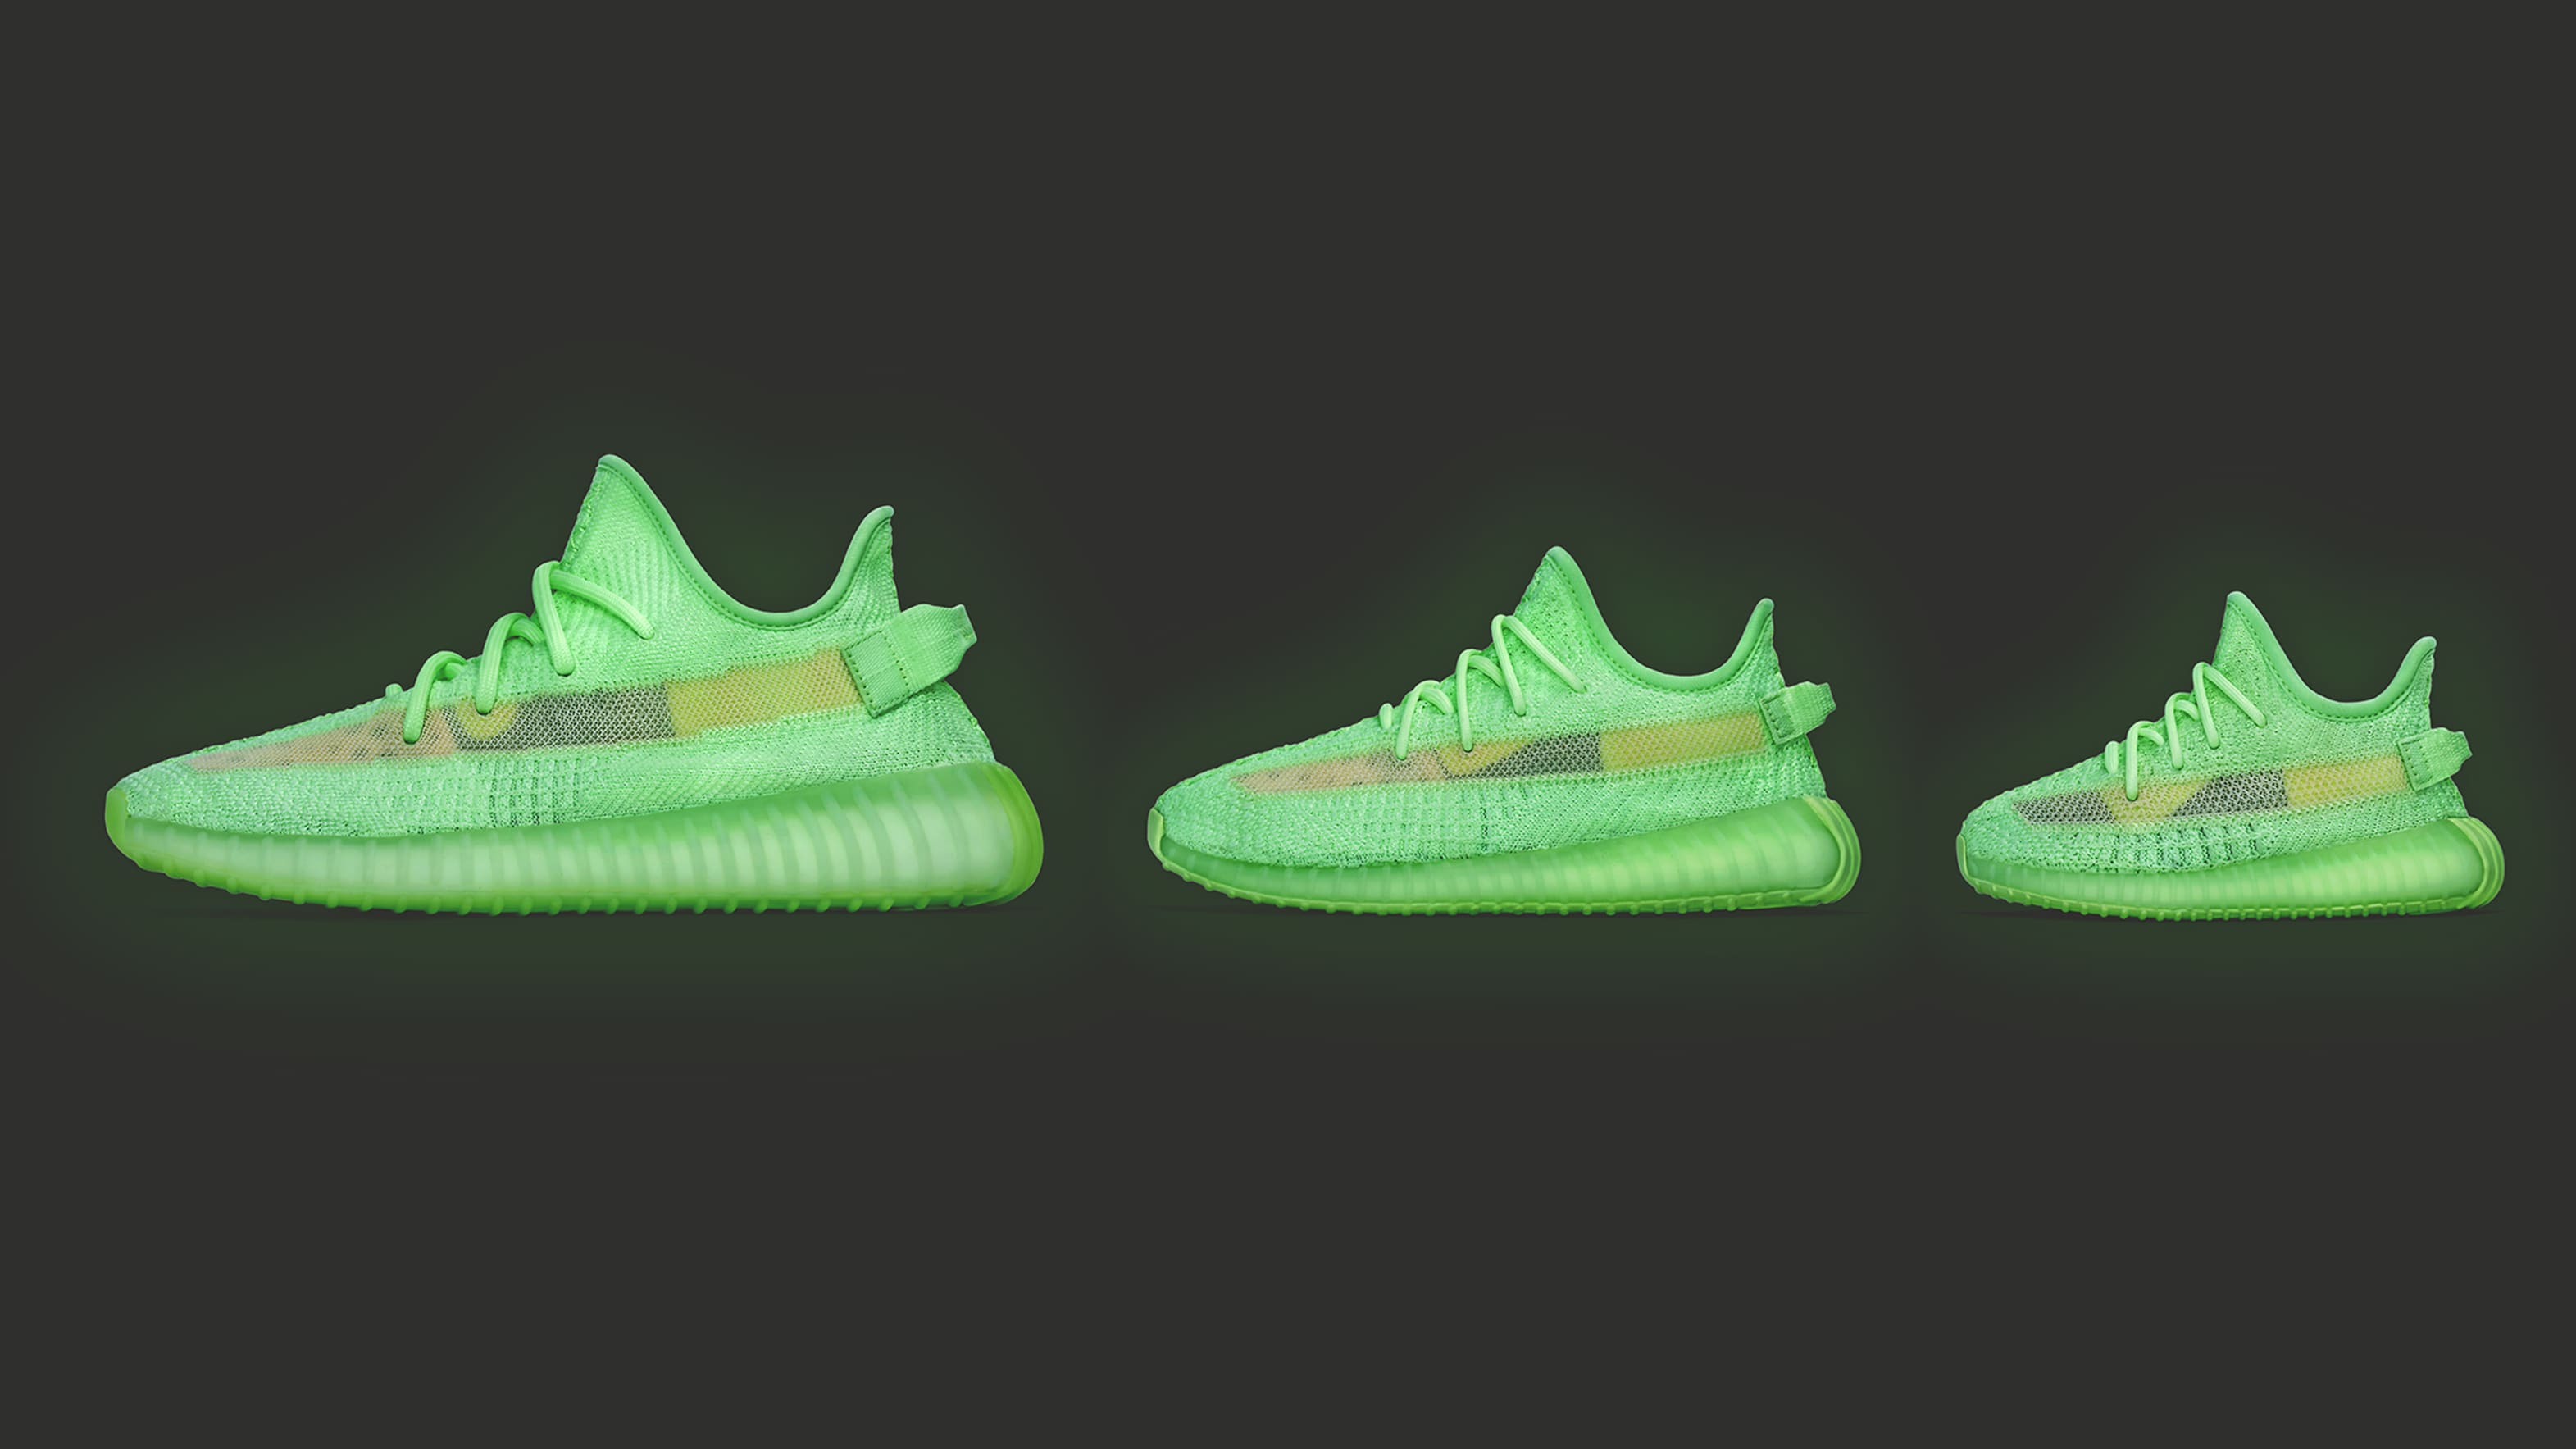 huge selection of 86787 df4f7 Adidas Yeezy Boost 350 V2 'Glow in the Dark' Release Date ...